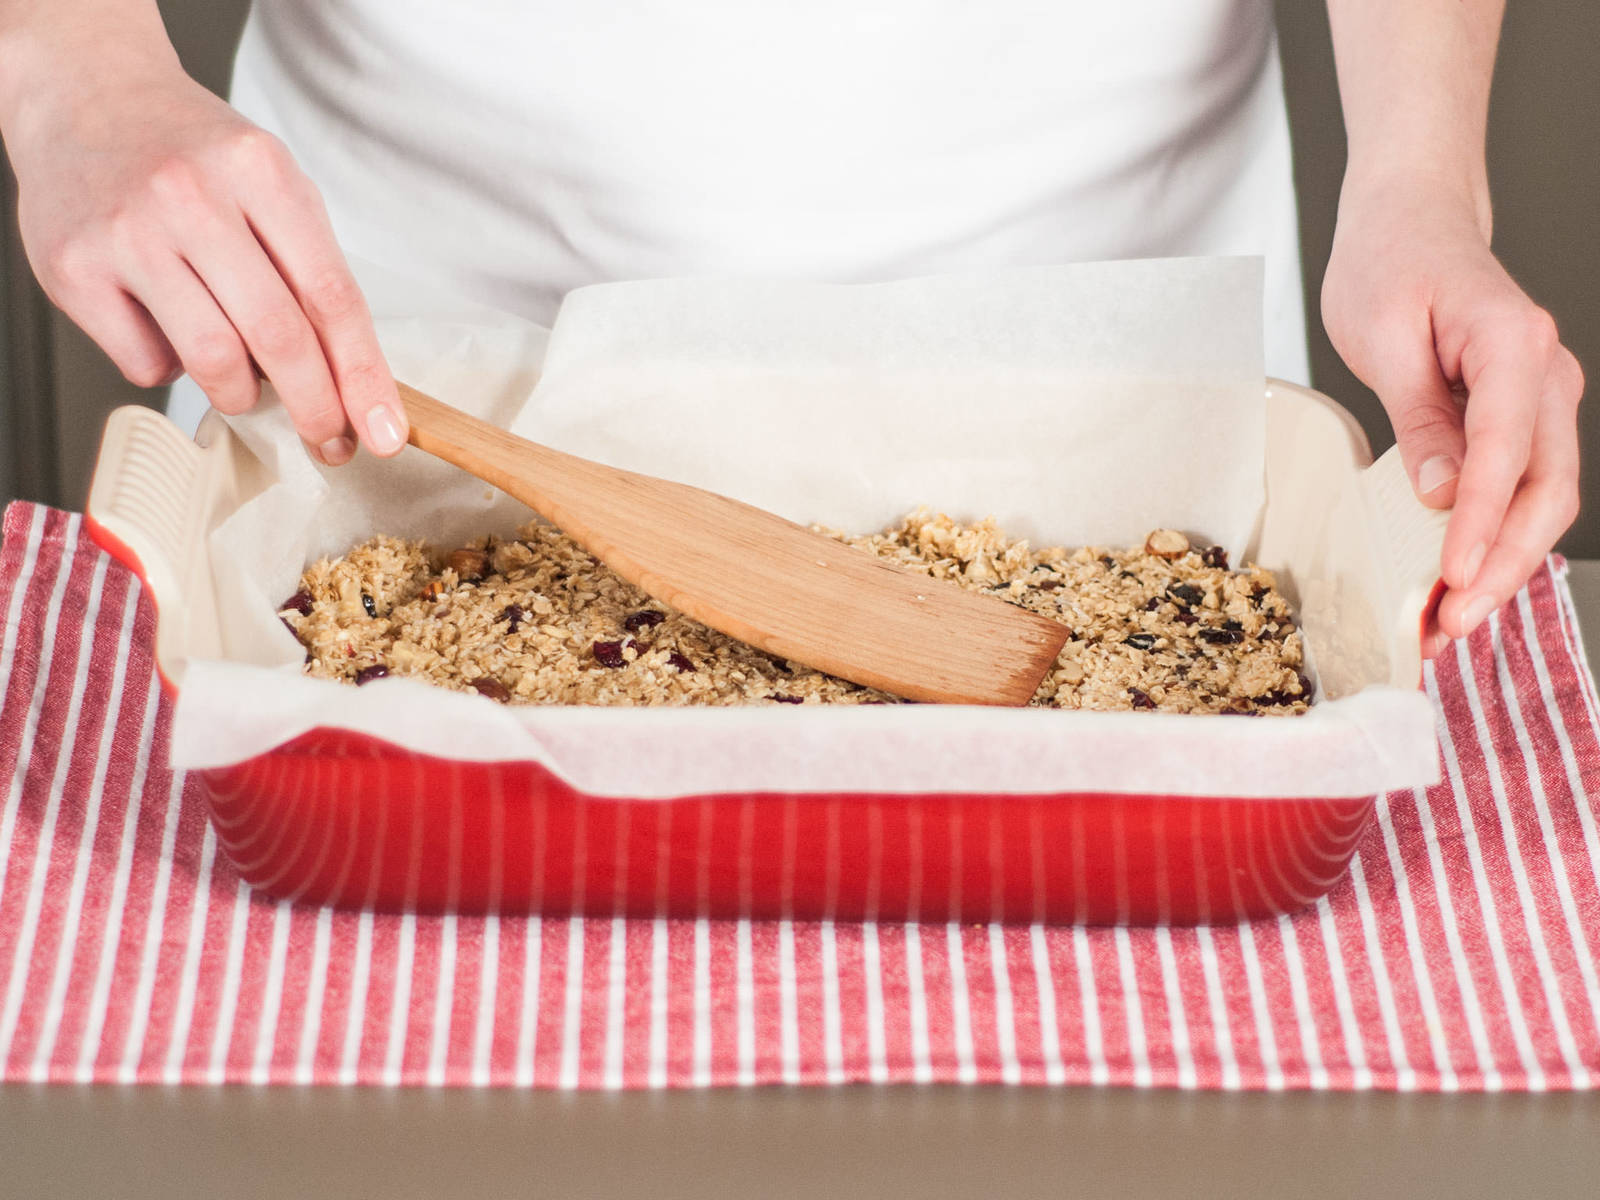 Add oat mixture to a parchment paper-lined baking dish. Bake in preheated oven at 170°C/350°F for approx. 15 - 20 min. until golden. Allow to cool off for approx. 15 - 20 min.